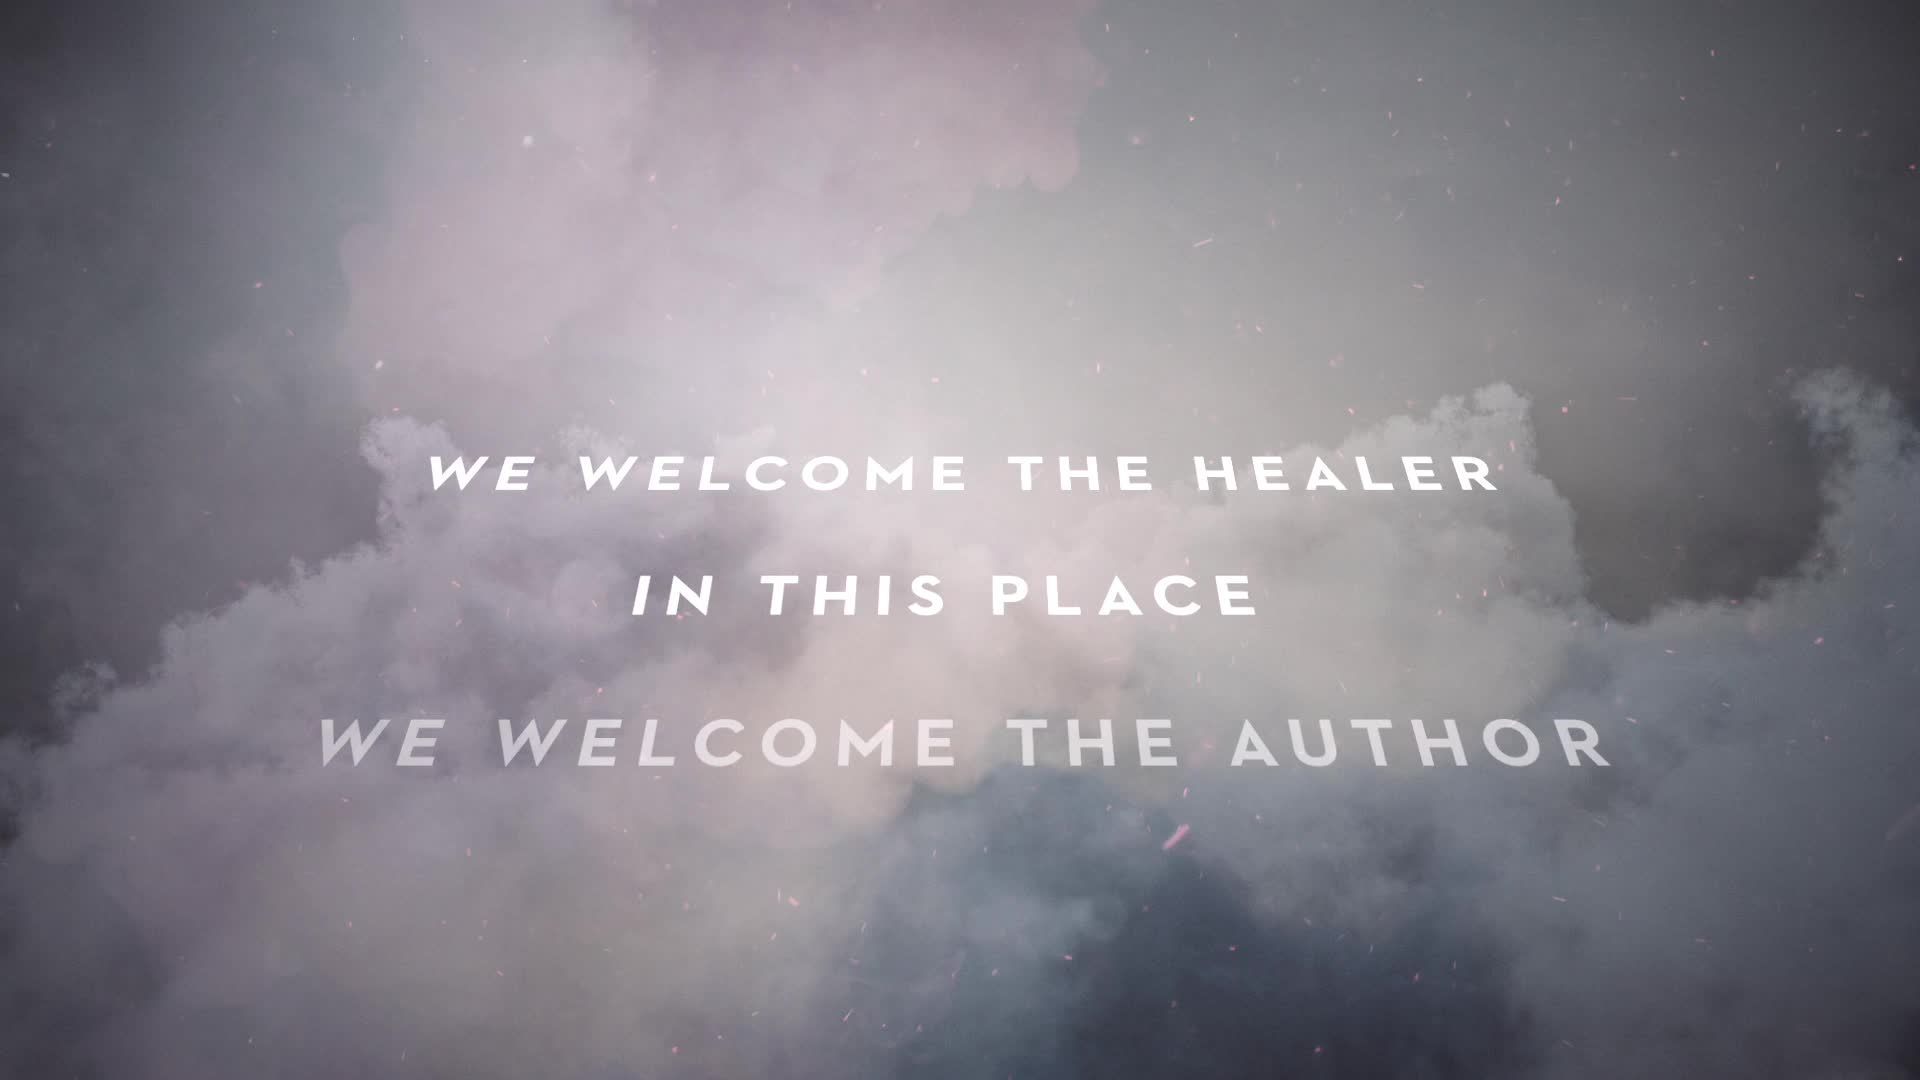 Passion - Welcome The Healer